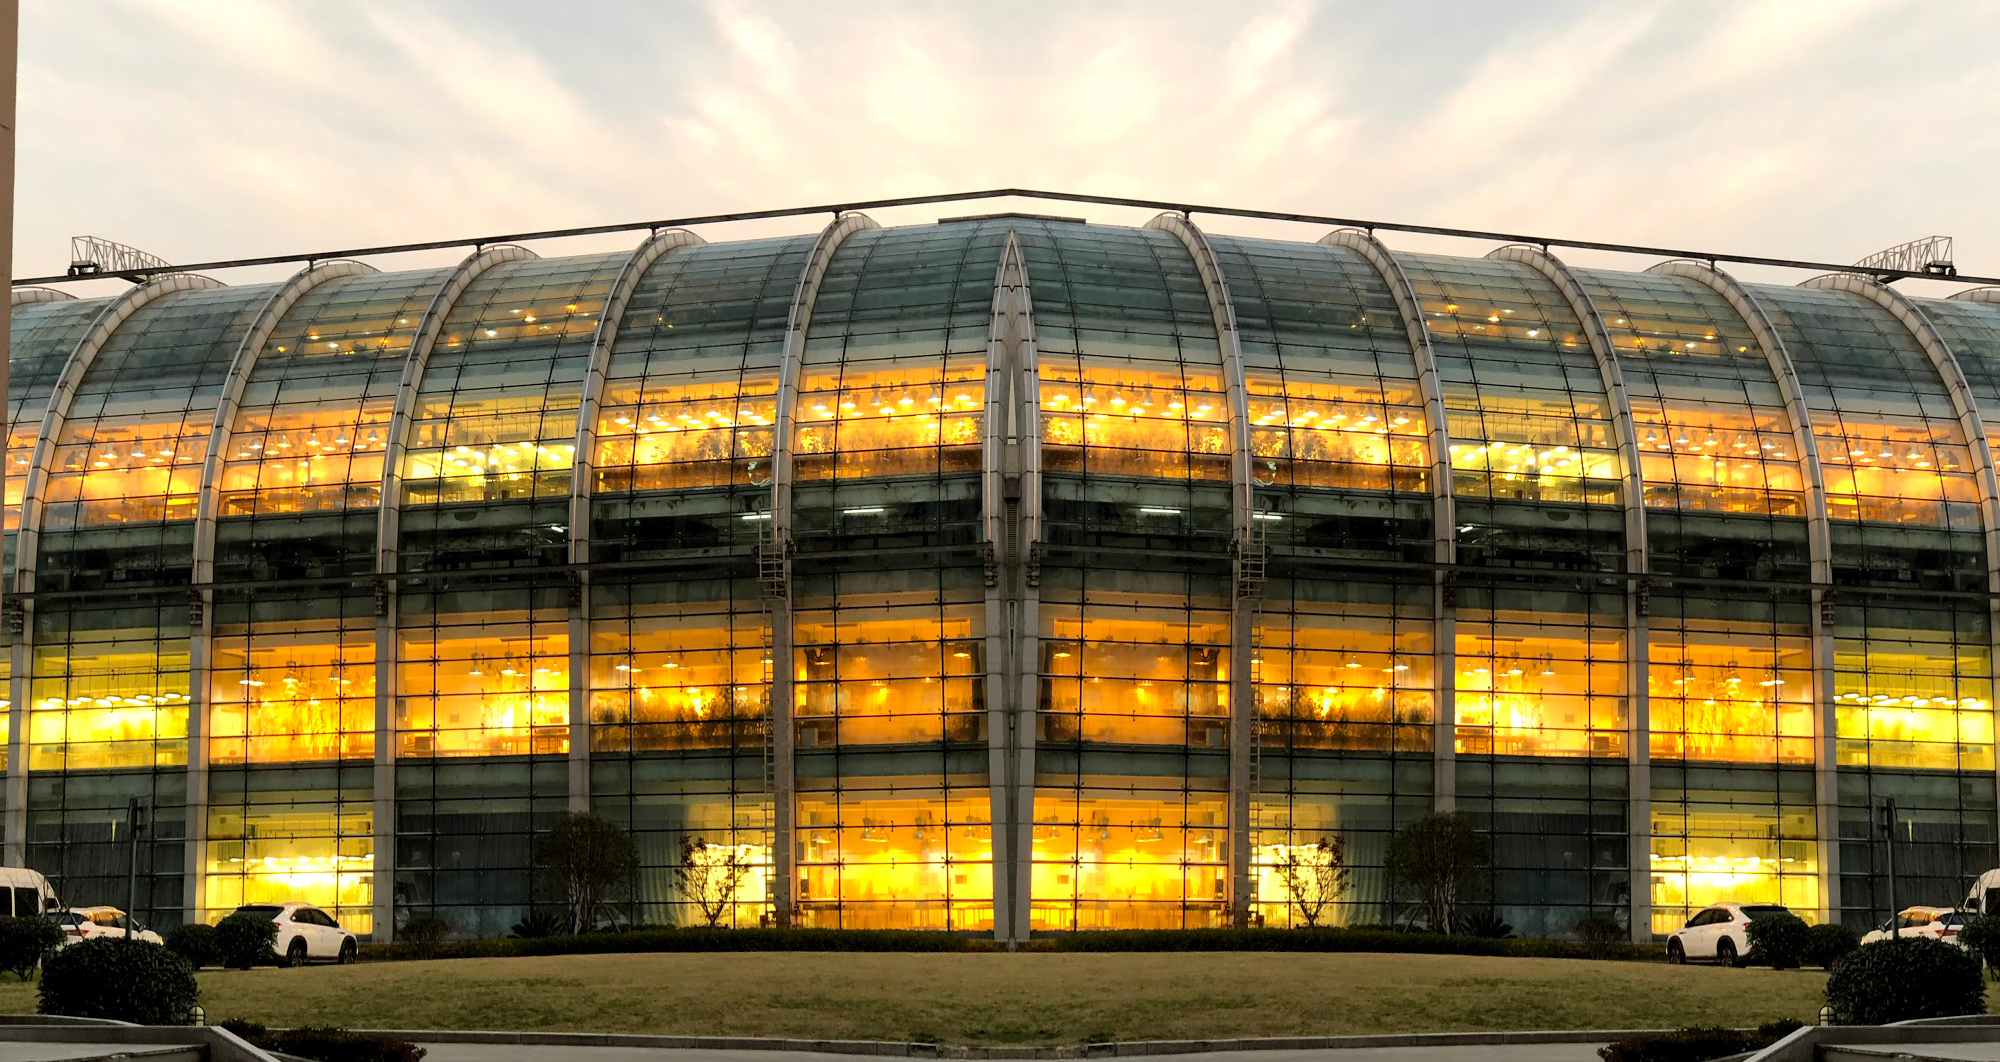 Center for Excellence in Molecular Plant Sciences, Shanghai Institute of Plant Physiology and Ecology, CAS